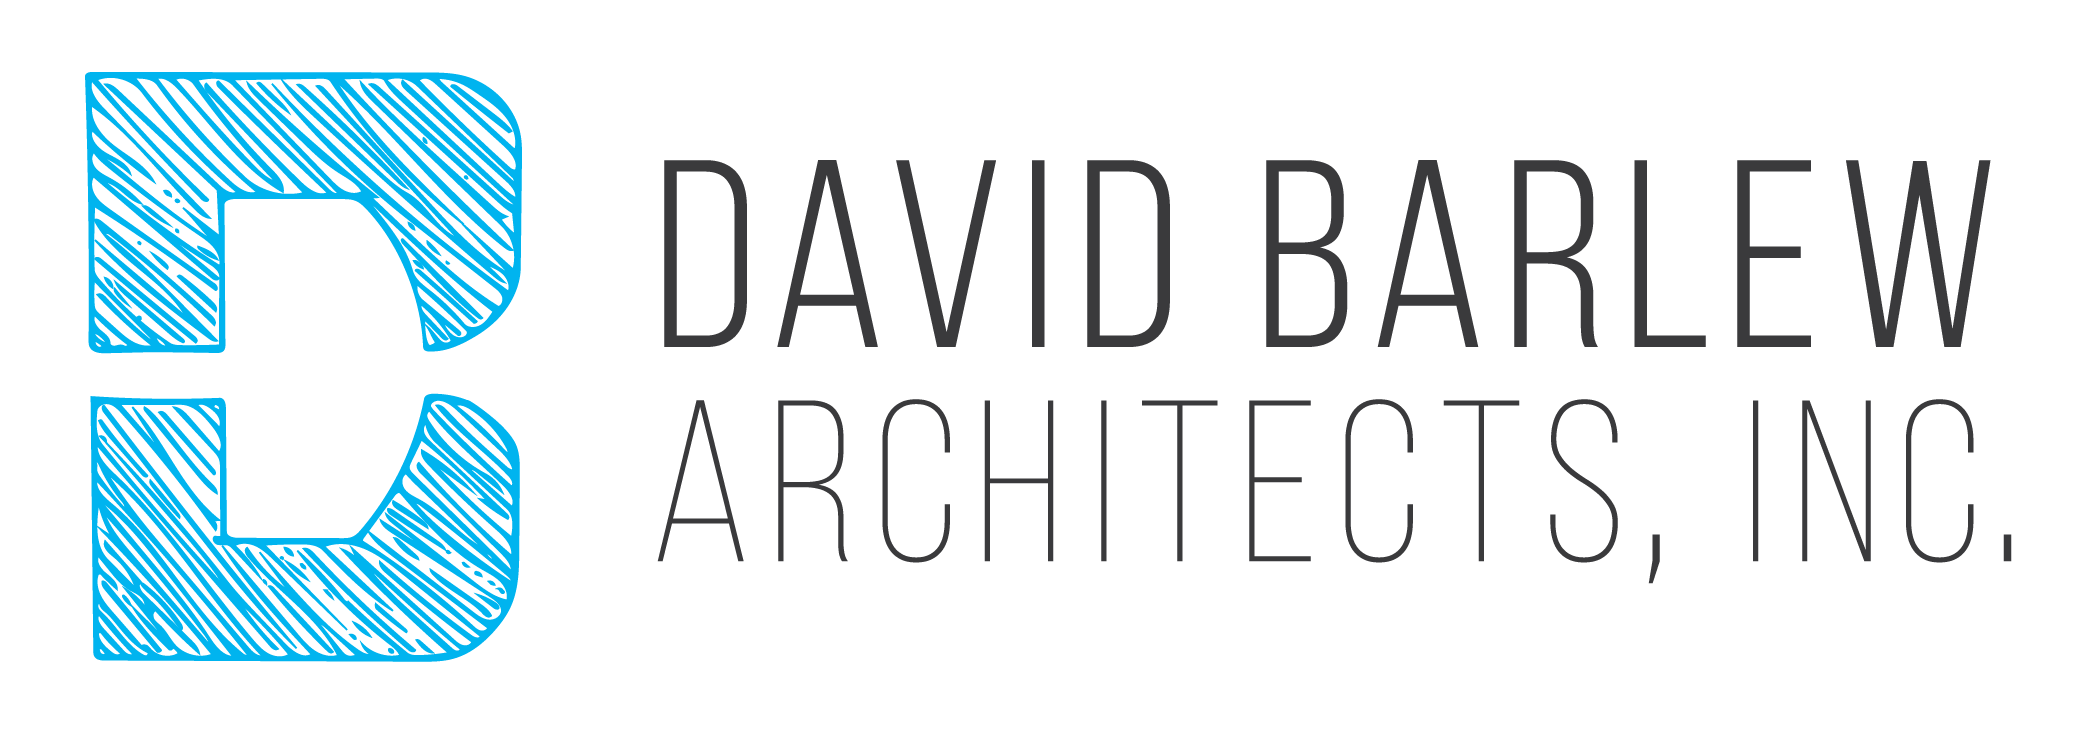 David Barlew Architects, Inc.